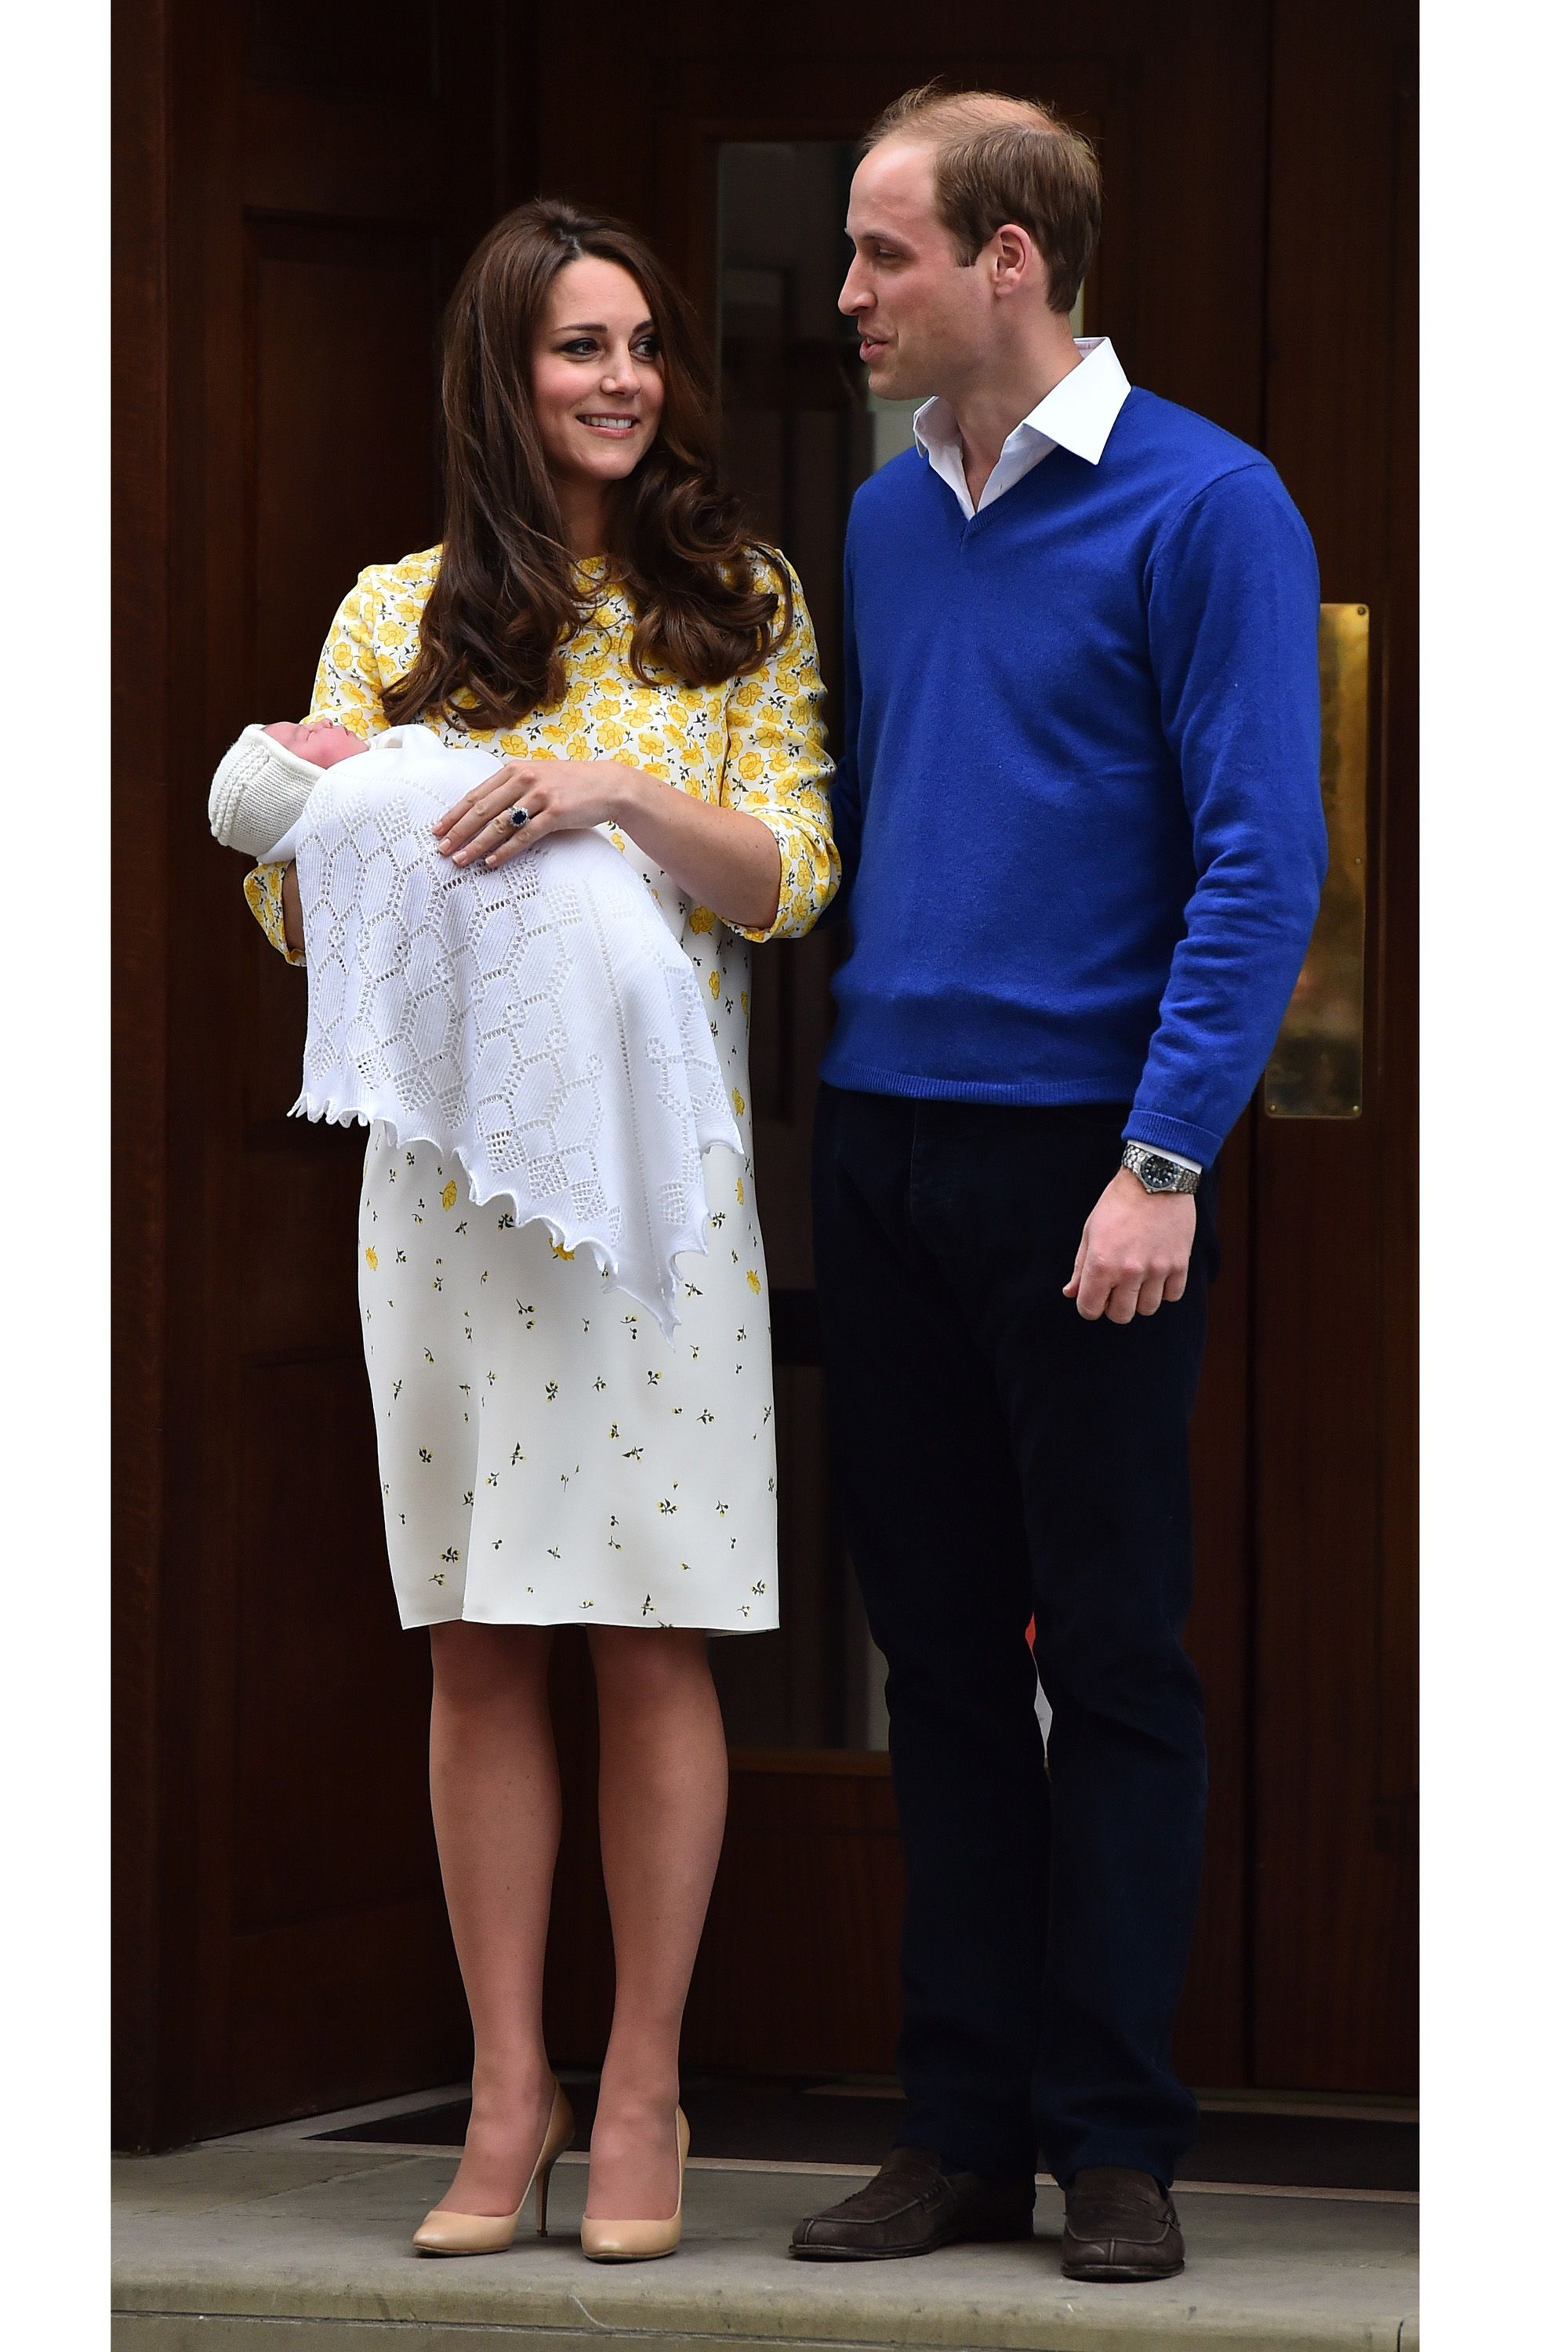 Britain's Prince William, Duke of Cambridge, and his wife Catherine, Duchess of Cambridge show their newly-born daughter, their second child, to the media outside the Lindo Wing at St Mary's Hospital in central London, on May 2, 2015.  The Duchess of Cambridge was safely delivered of a daughter weighing 8lbs 3oz, Kensington Palace announced. The newly-born Princess of Cambridge is fourth in line to the British throne. AFP PHOTO / BEN STANSALL        (Photo credit should read BEN STANSALL/AFP/Getty Images)